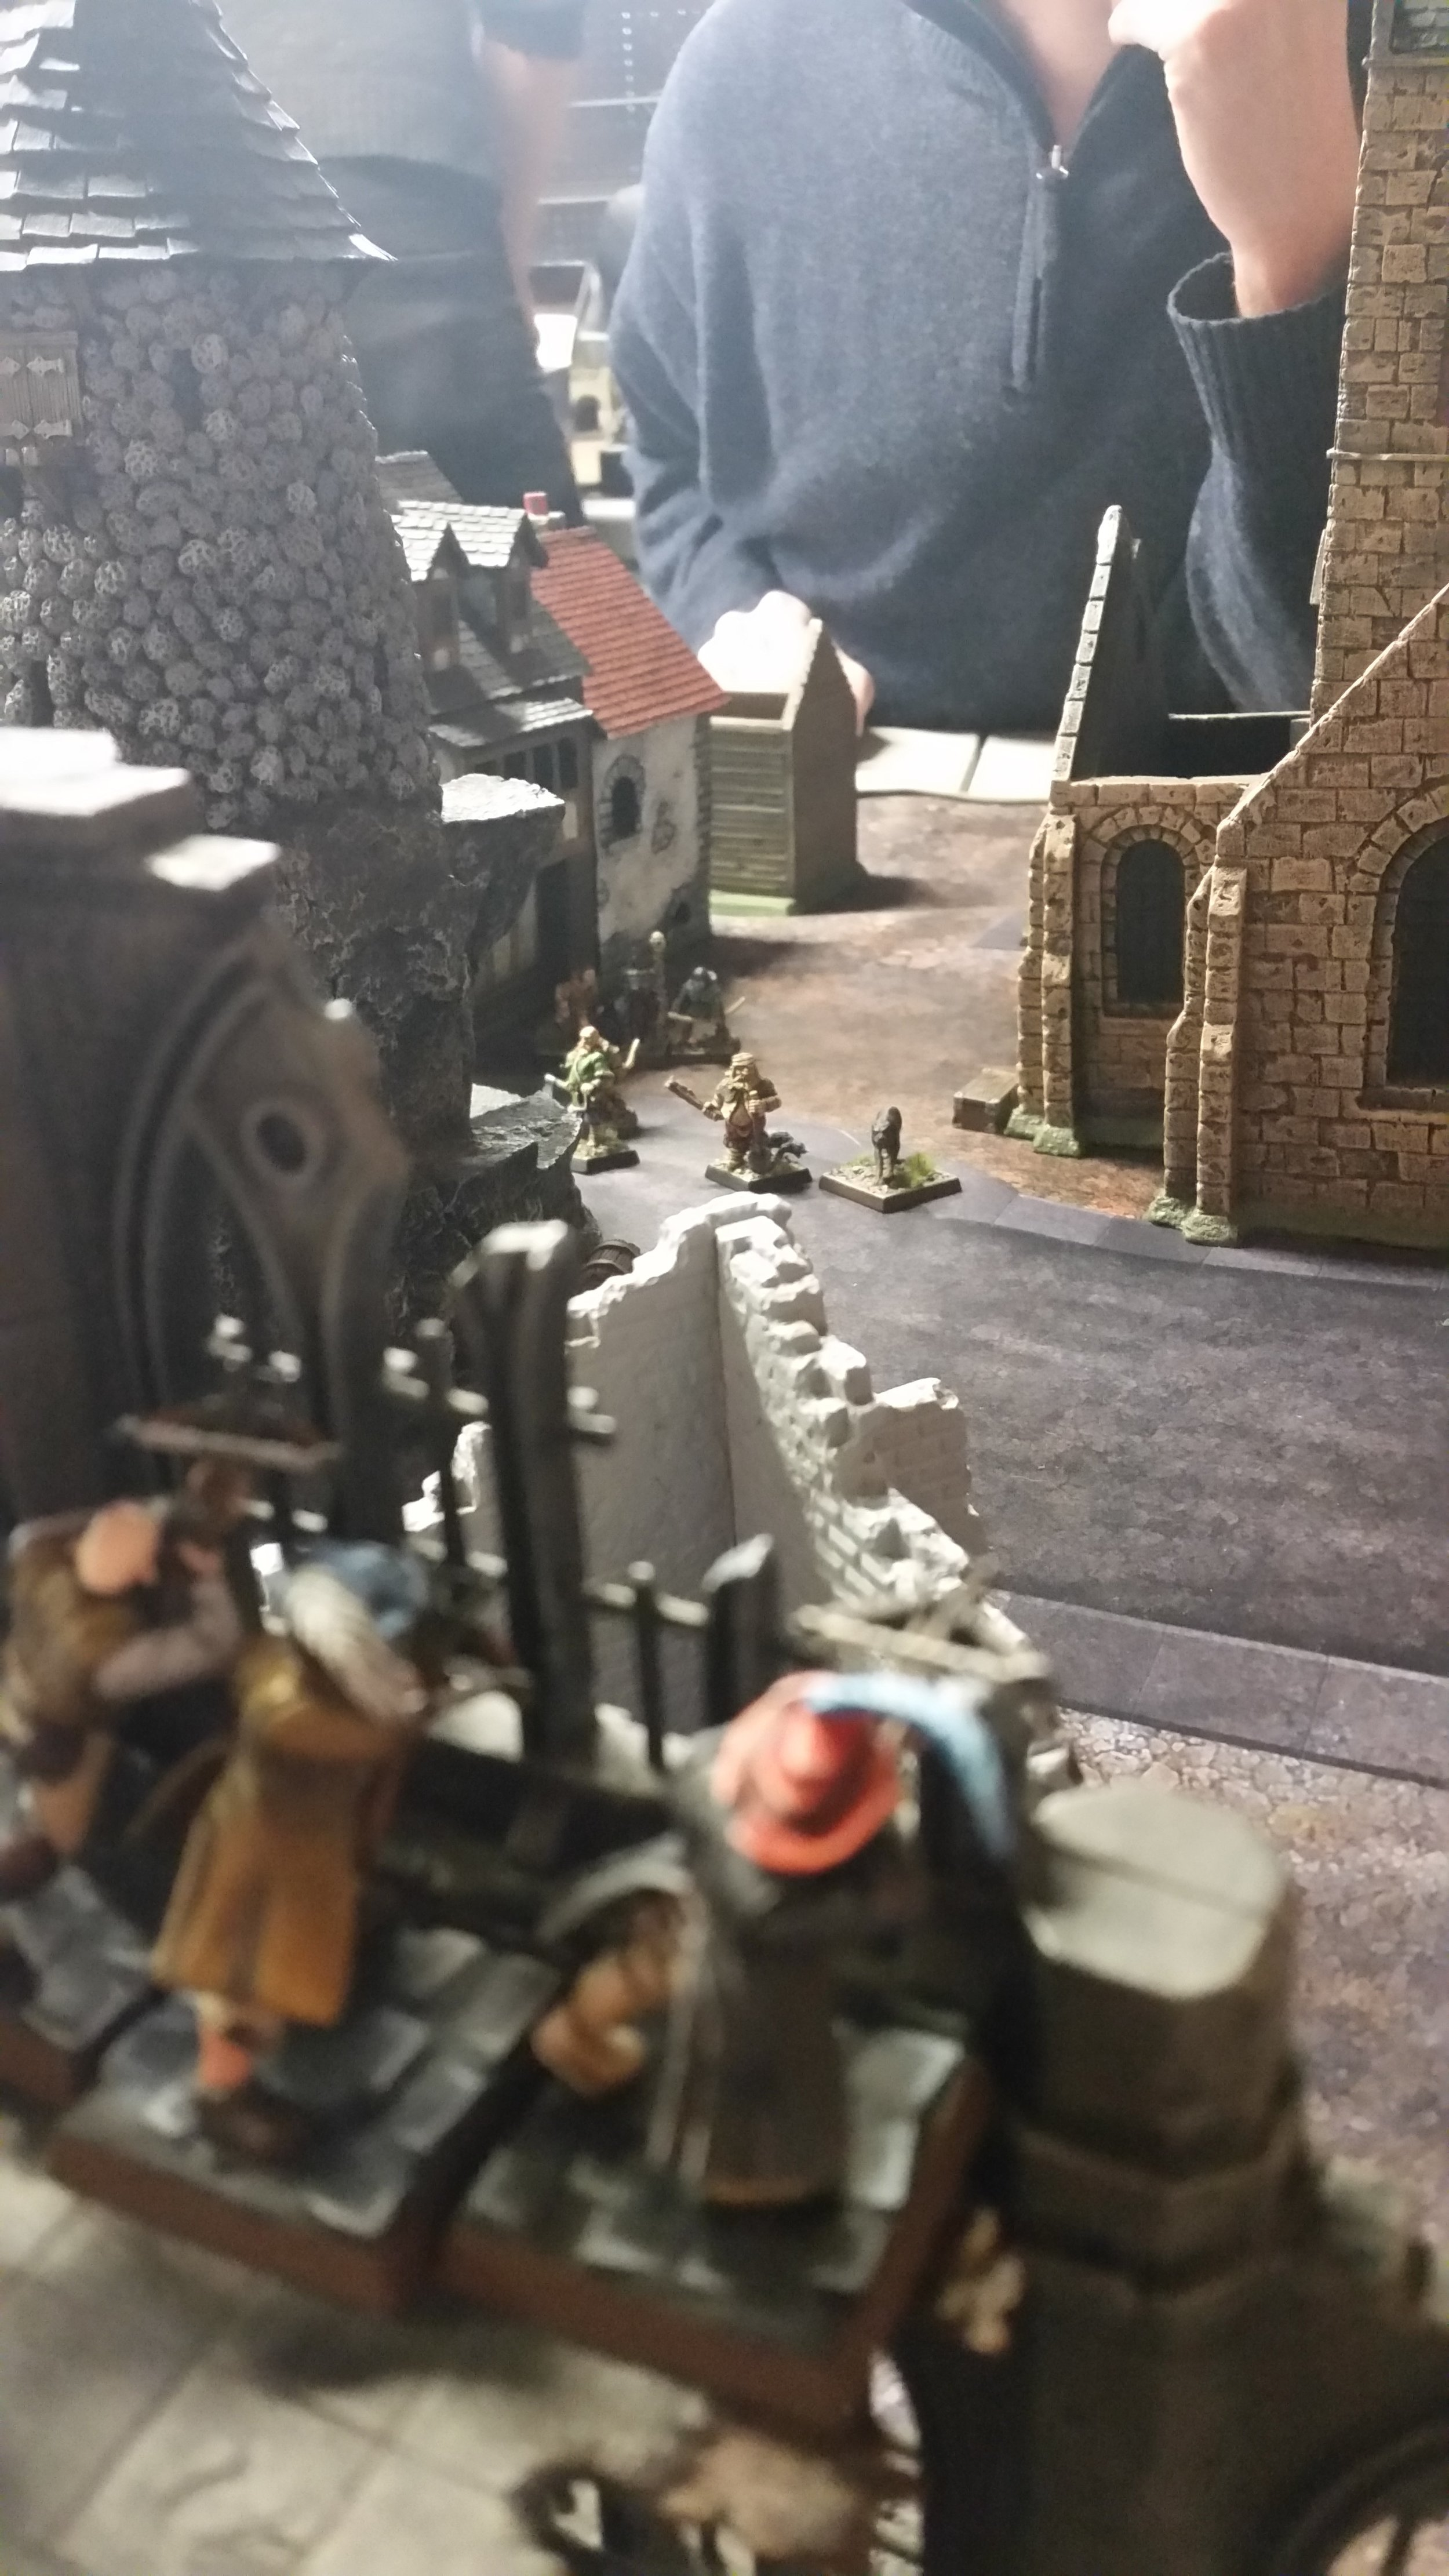 After hurling a BONEDART directly at the face of my apprentice, the crossbow team let off a bolt-volley which pasted the Dark apprentice; his skewered corpse spreading fear and uncertainty among his compadres.